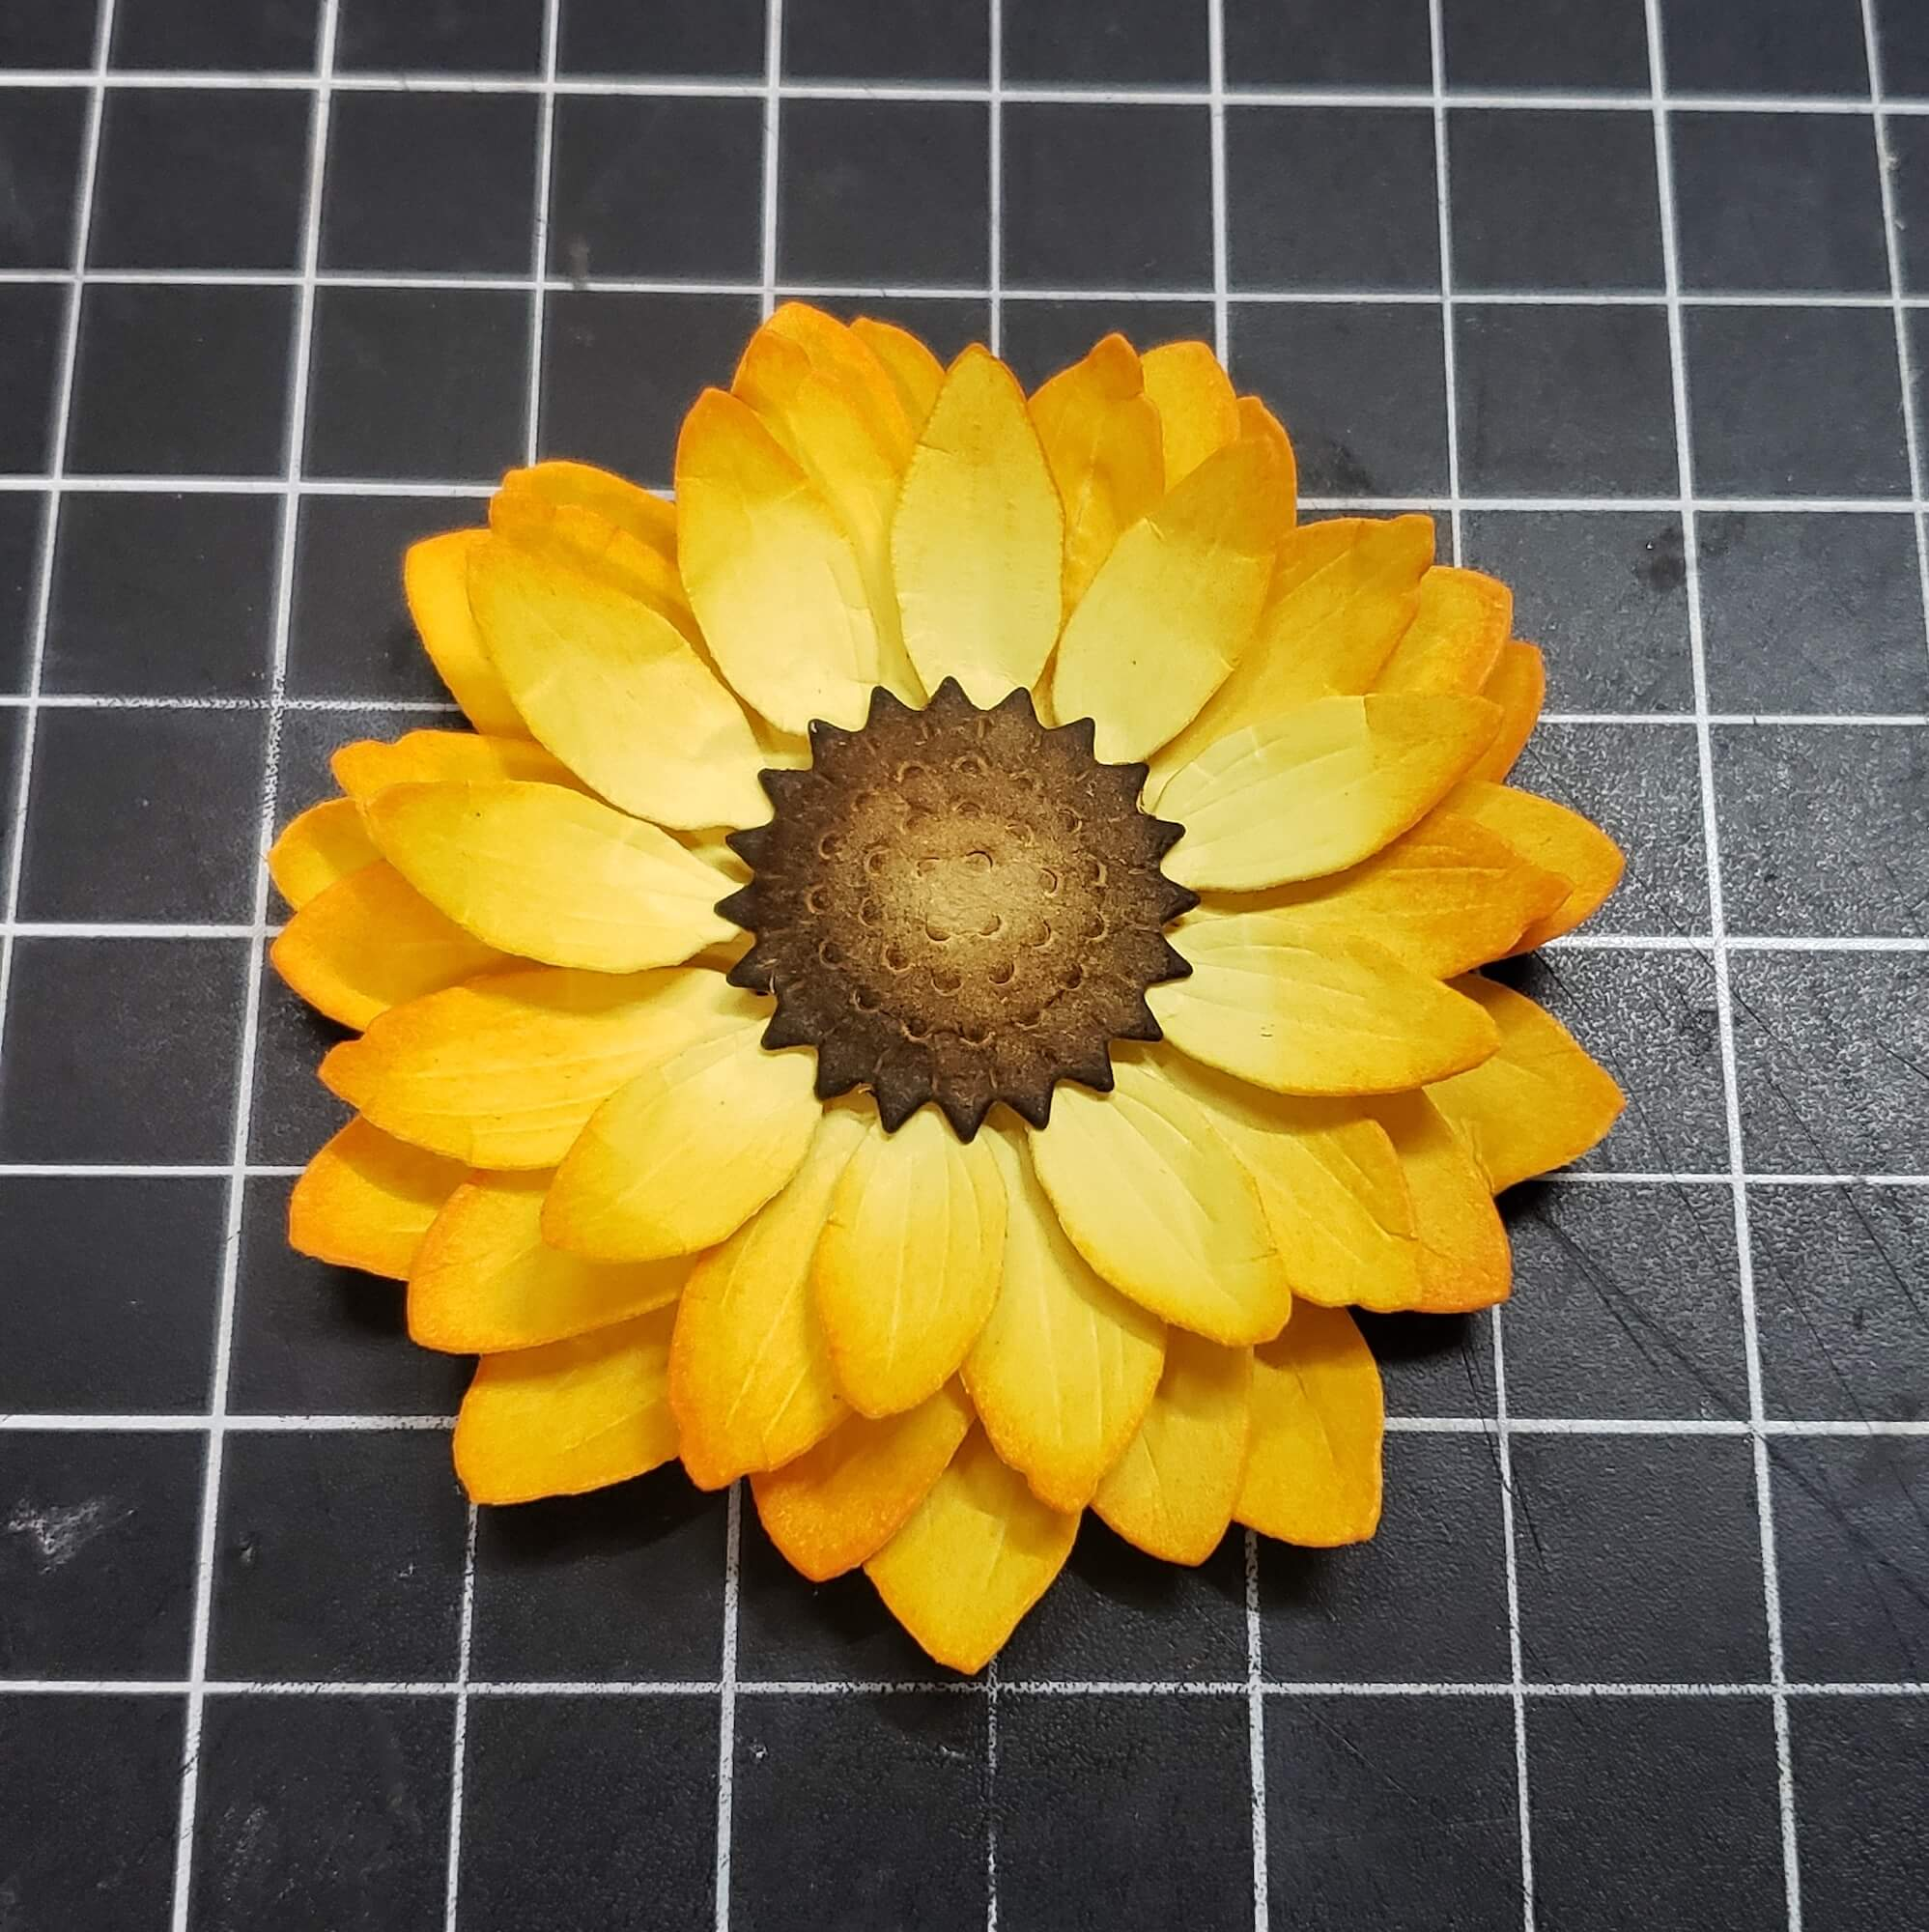 Sunflower petal rings all glued together